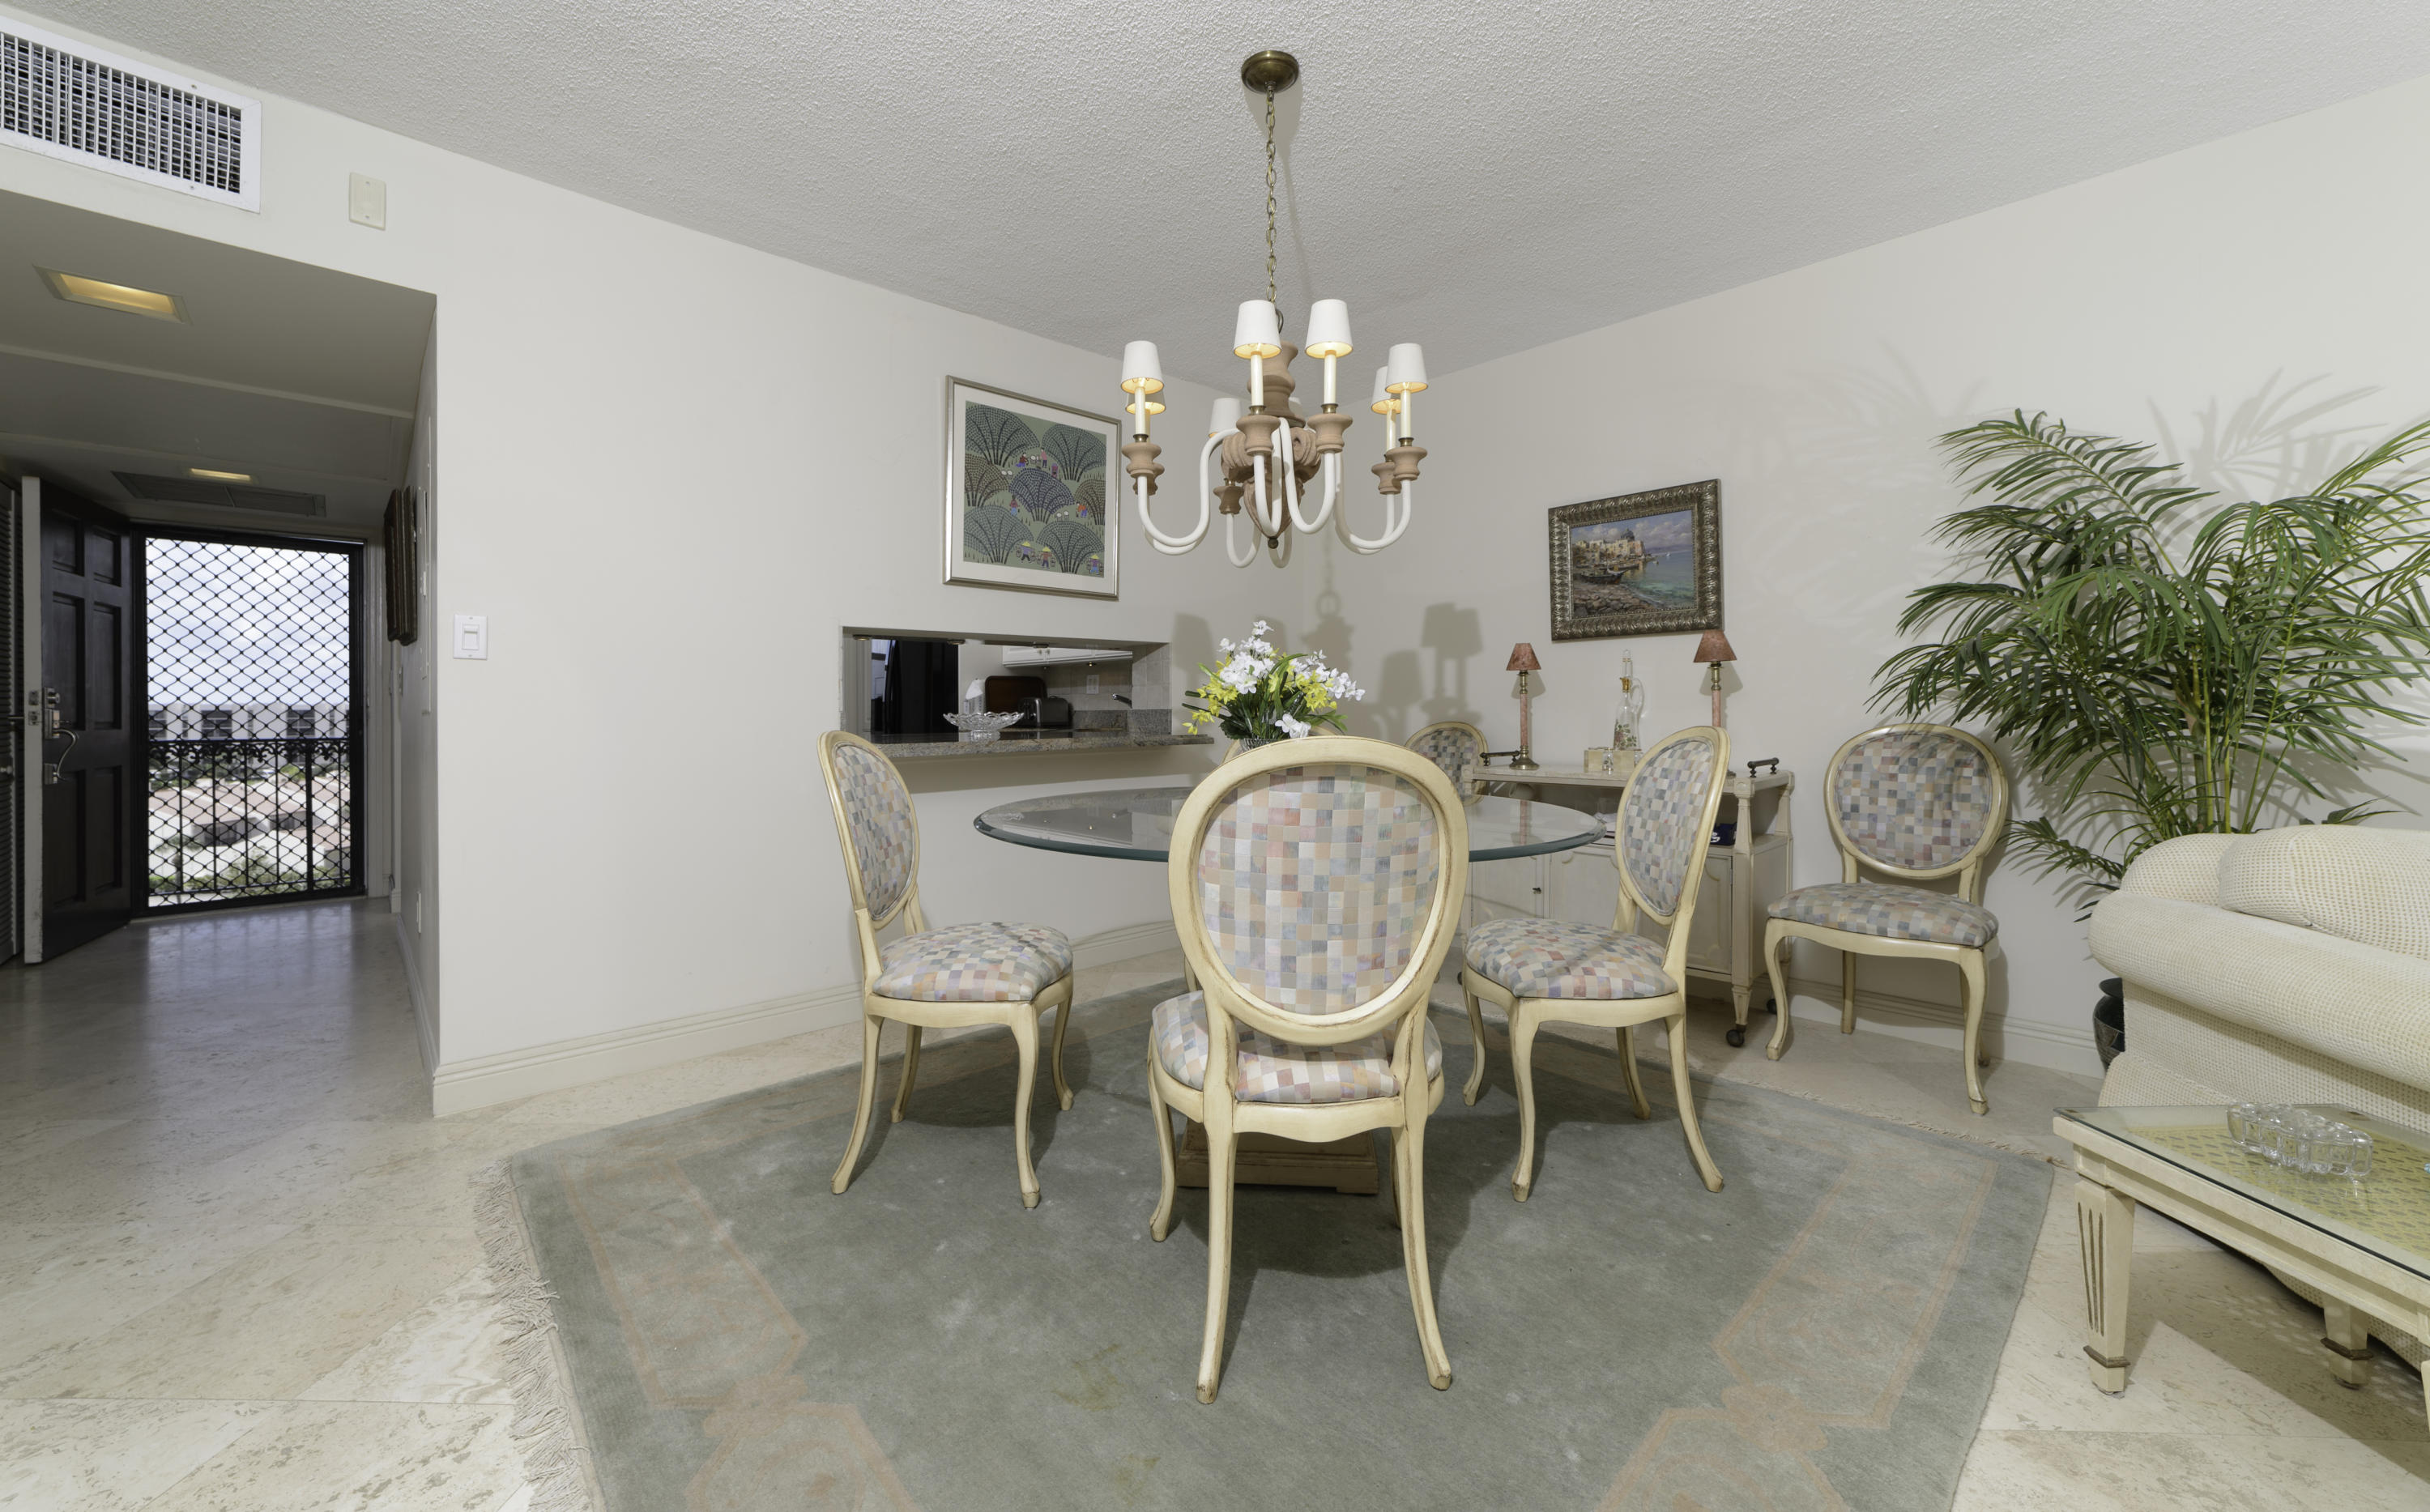 2871 N Ocean Boulevard D518 Boca Raton, FL 33431 small photo 8